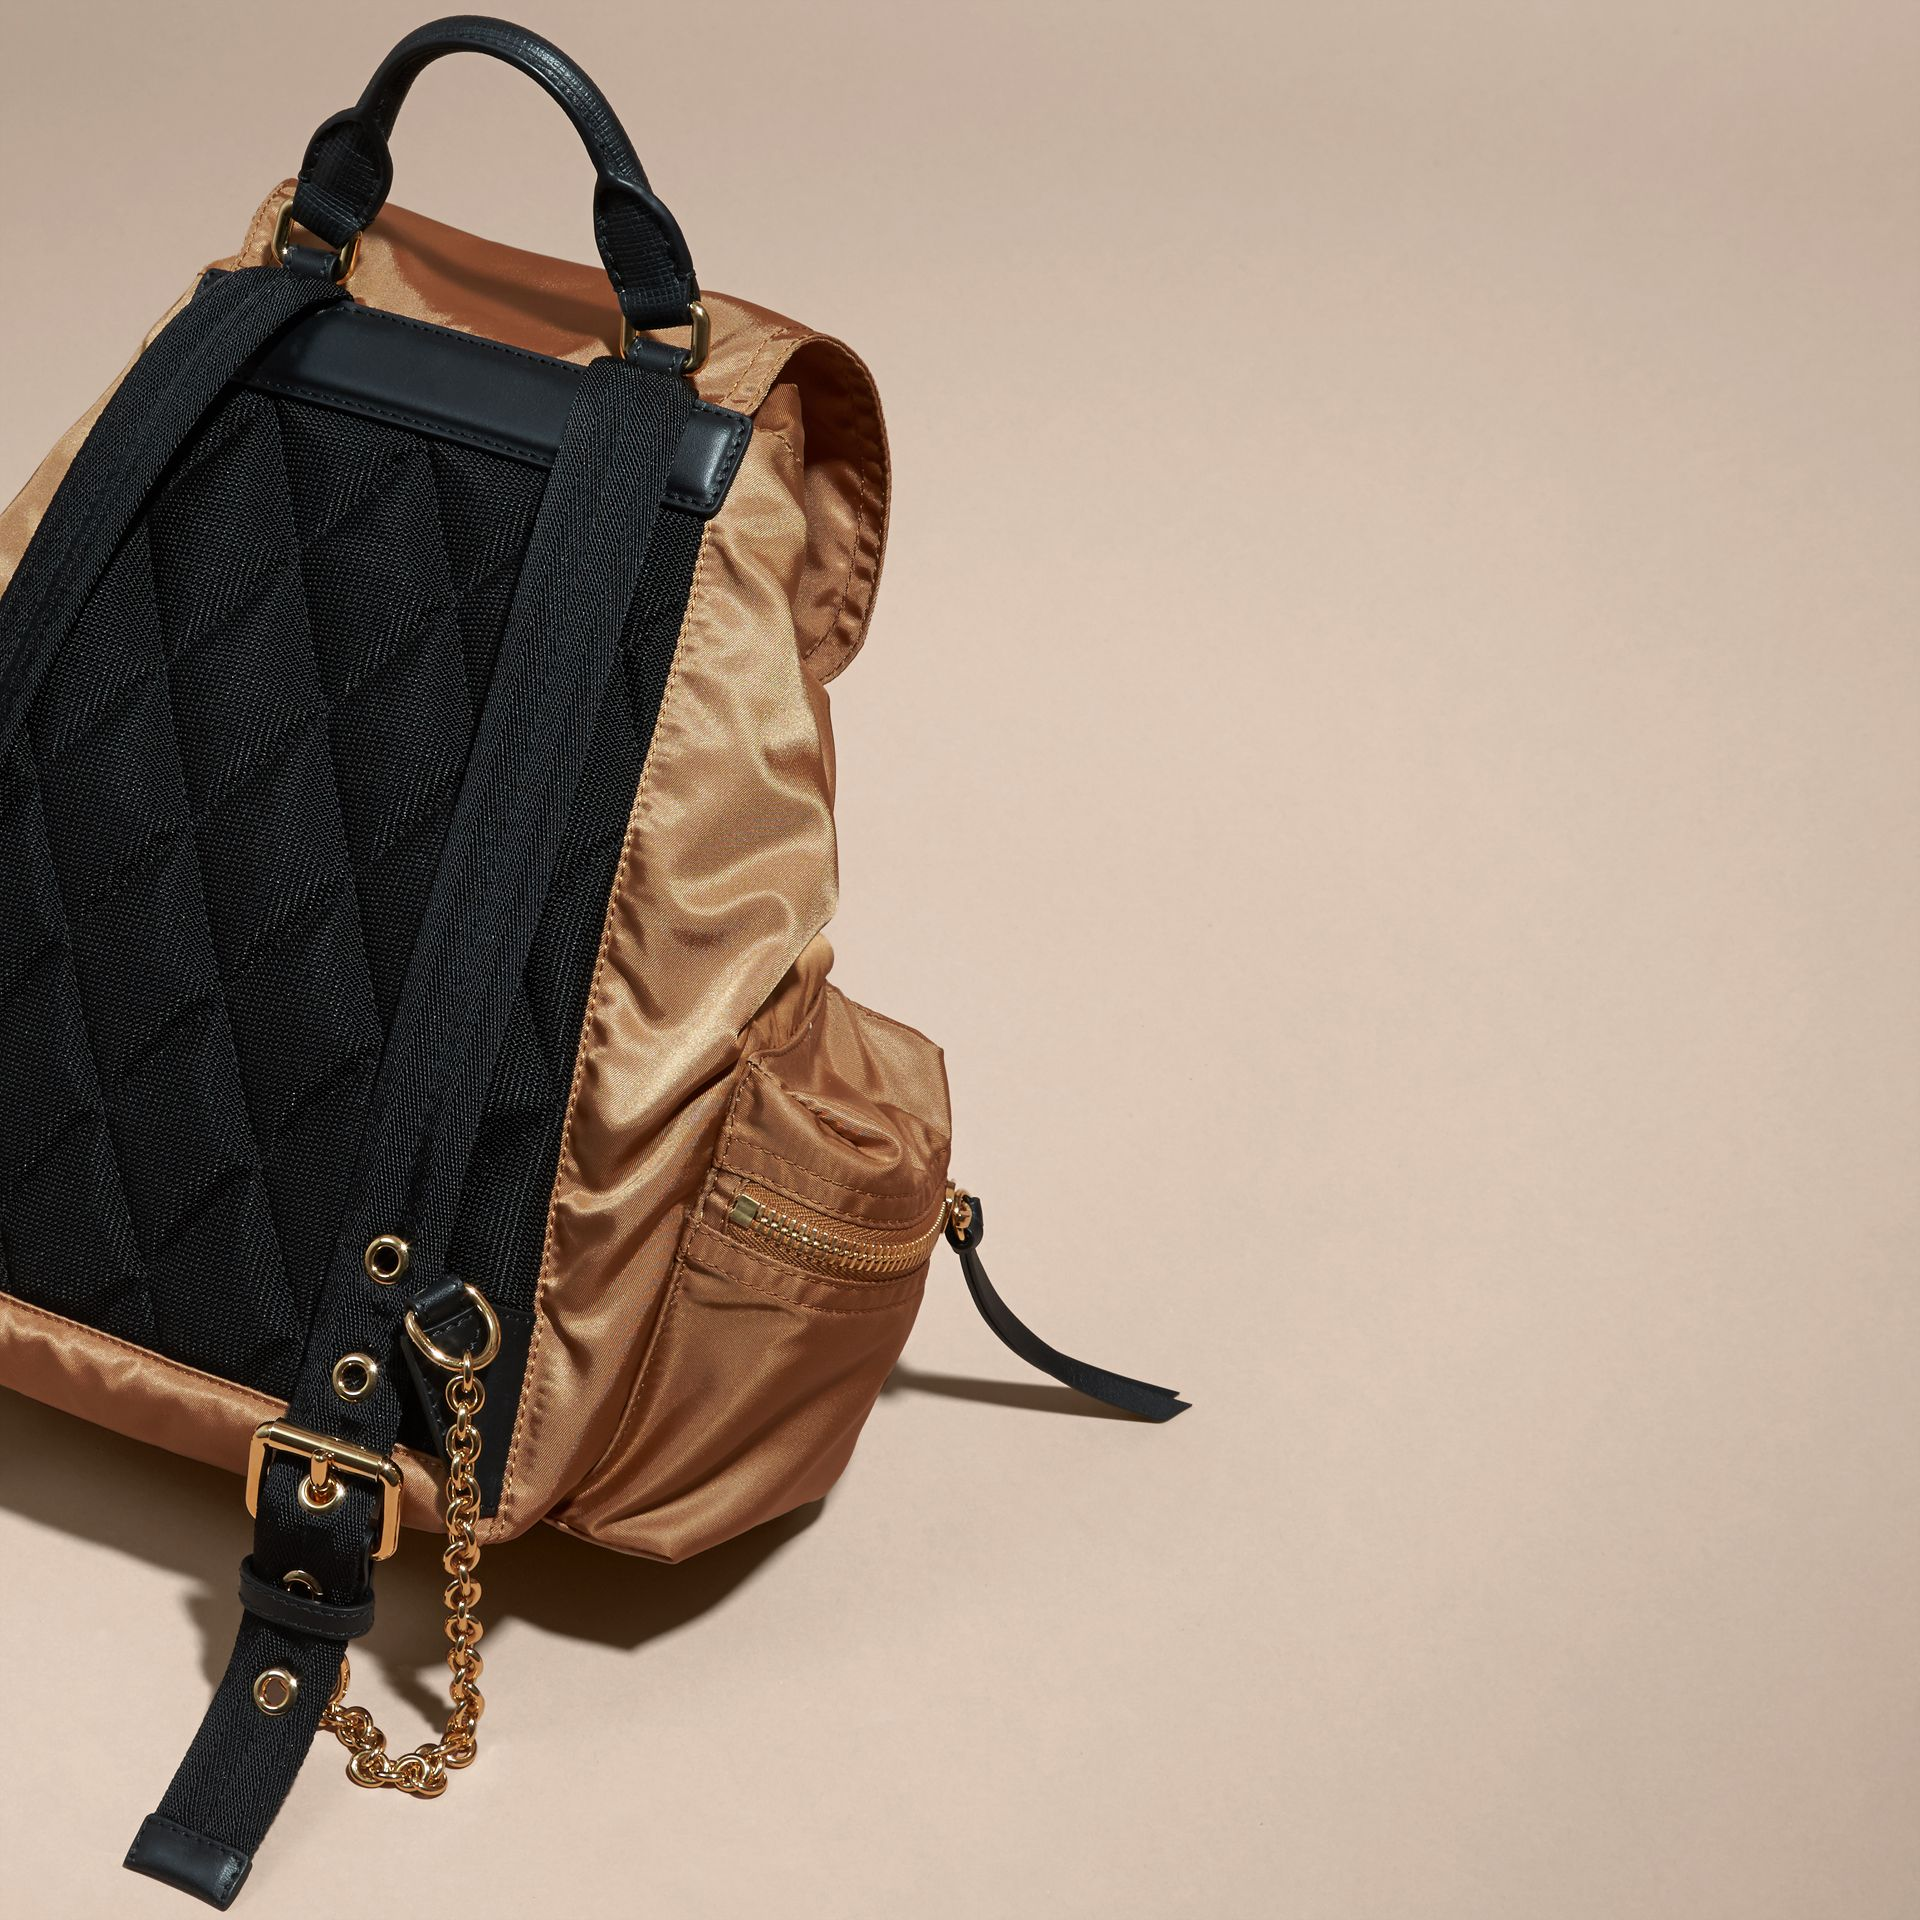 Sac The Rucksack medium en nylon technique et cuir (Lin Clair) - Femme | Burberry - photo de la galerie 5